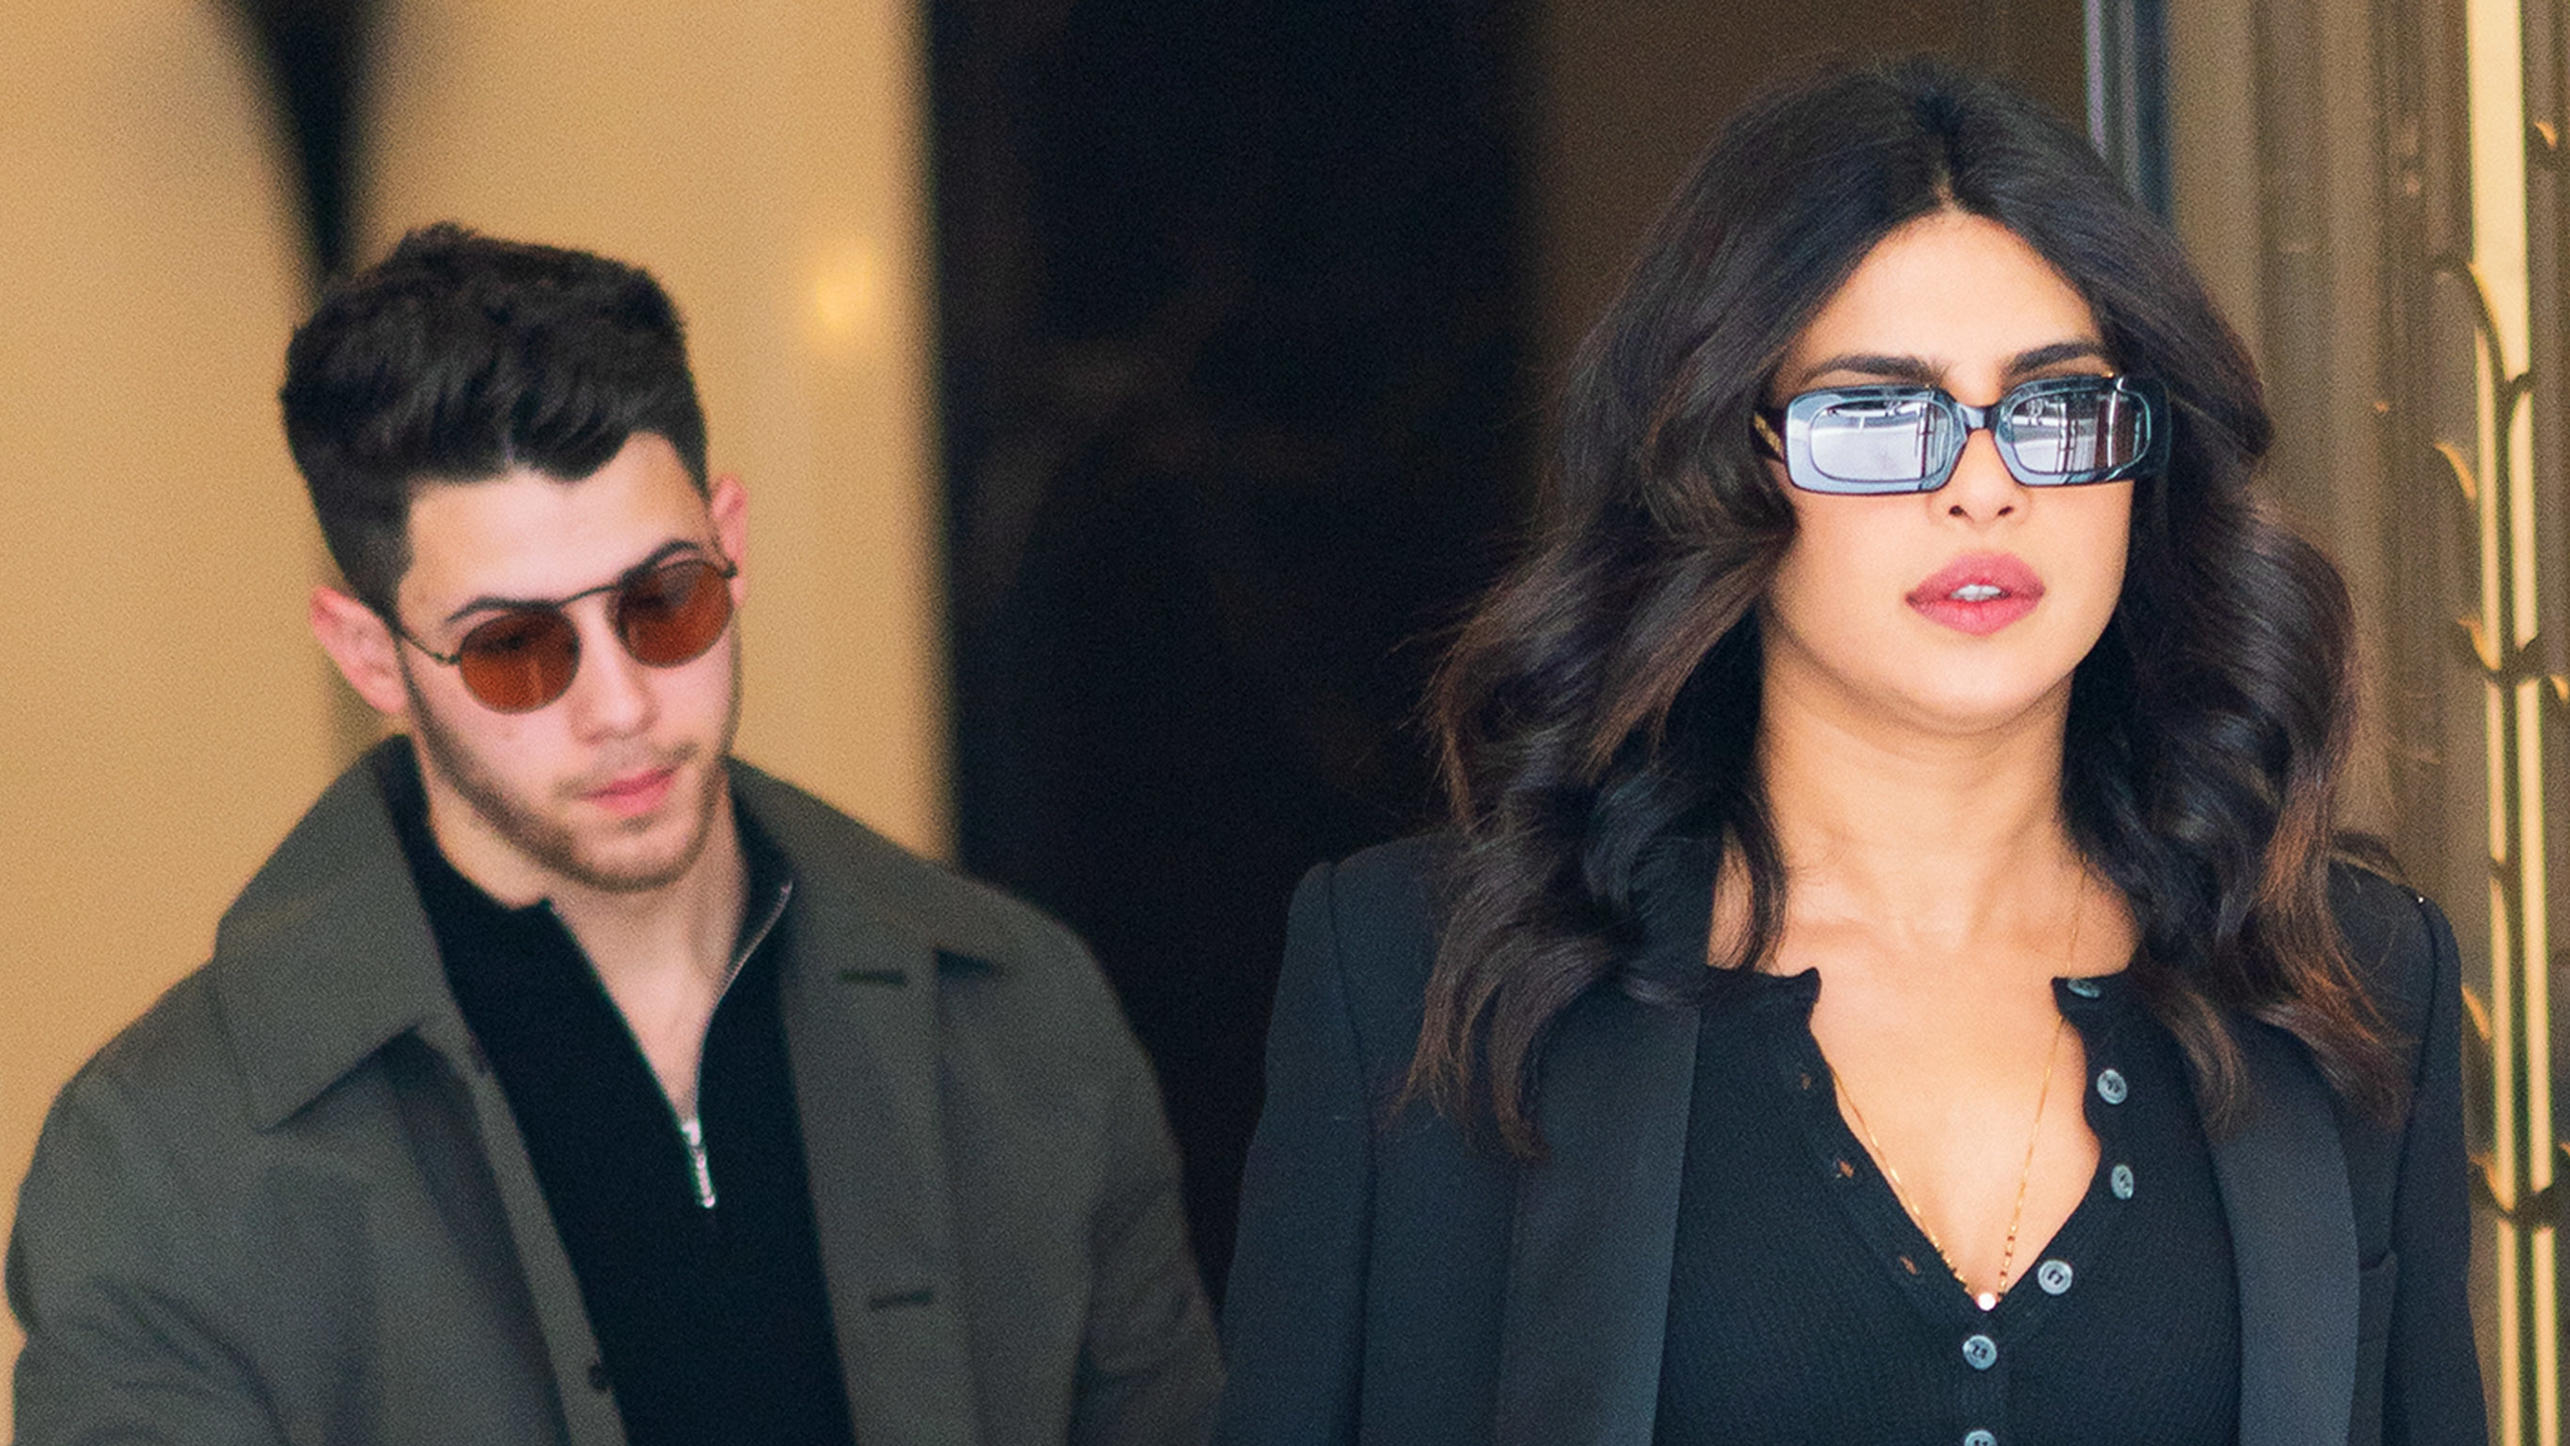 Priyanka Chopra wears her knee brace when heading out of her apartment with beau Nick Jonas in New YorkPictured: Nick Jonas,Priyanka ChopraRef: SPL5098272 160619 NON-EXCLUSIVEPicture by: Jackson Lee / SplashNews.comSplash News and PicturesLos Angeles